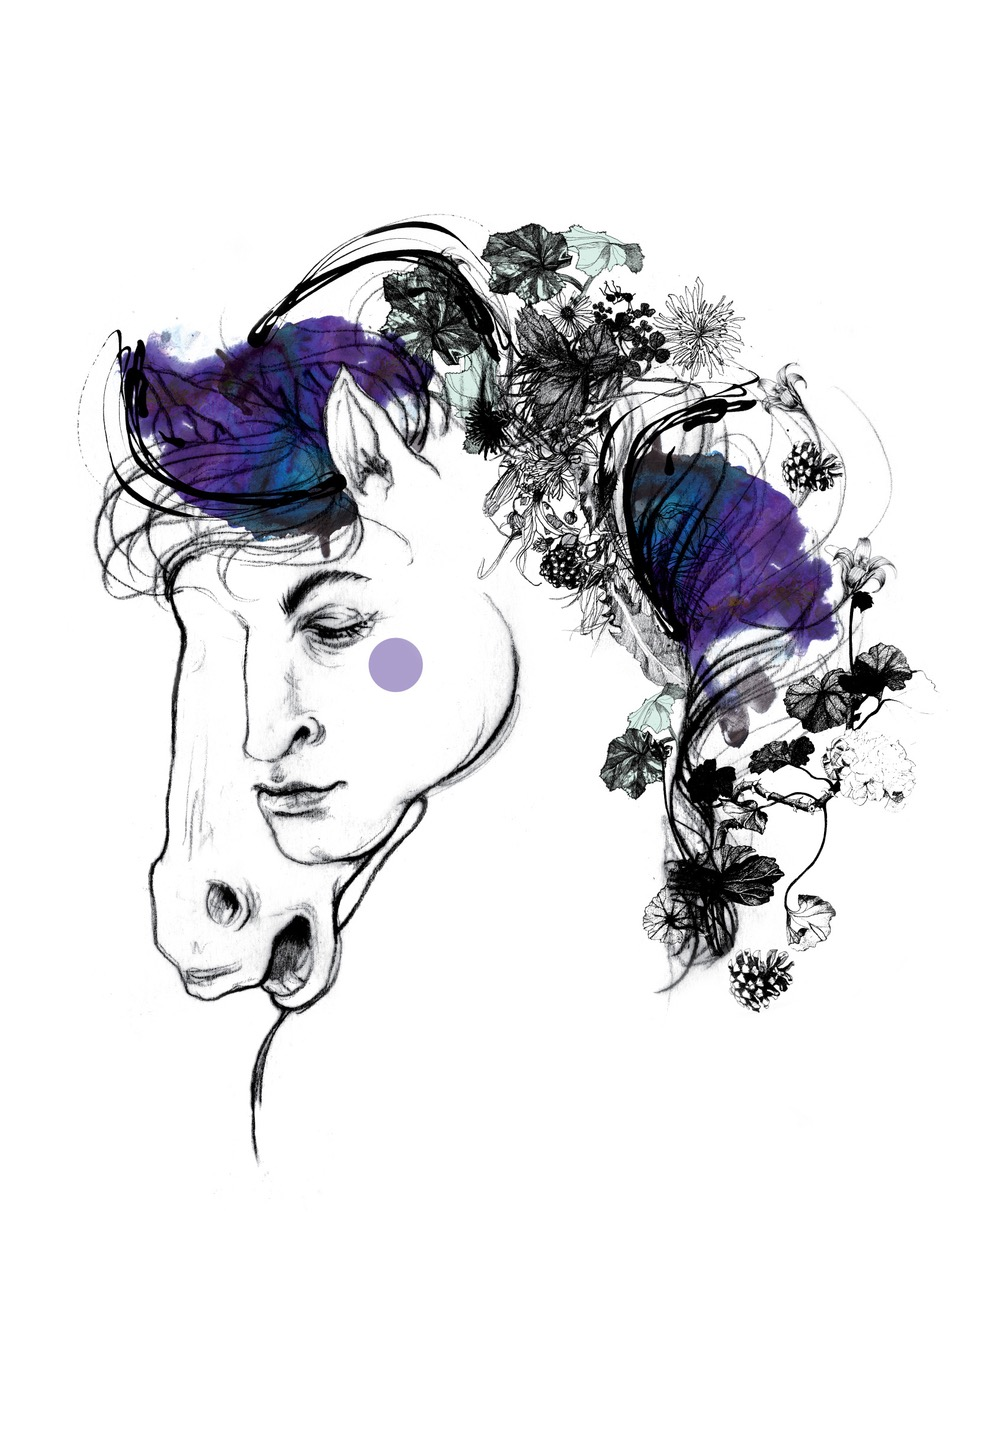 illustrator, illustrators, illustration, illustrations, man, men, horse, horses, flower, flowers, bloom, blooming, simple, outline